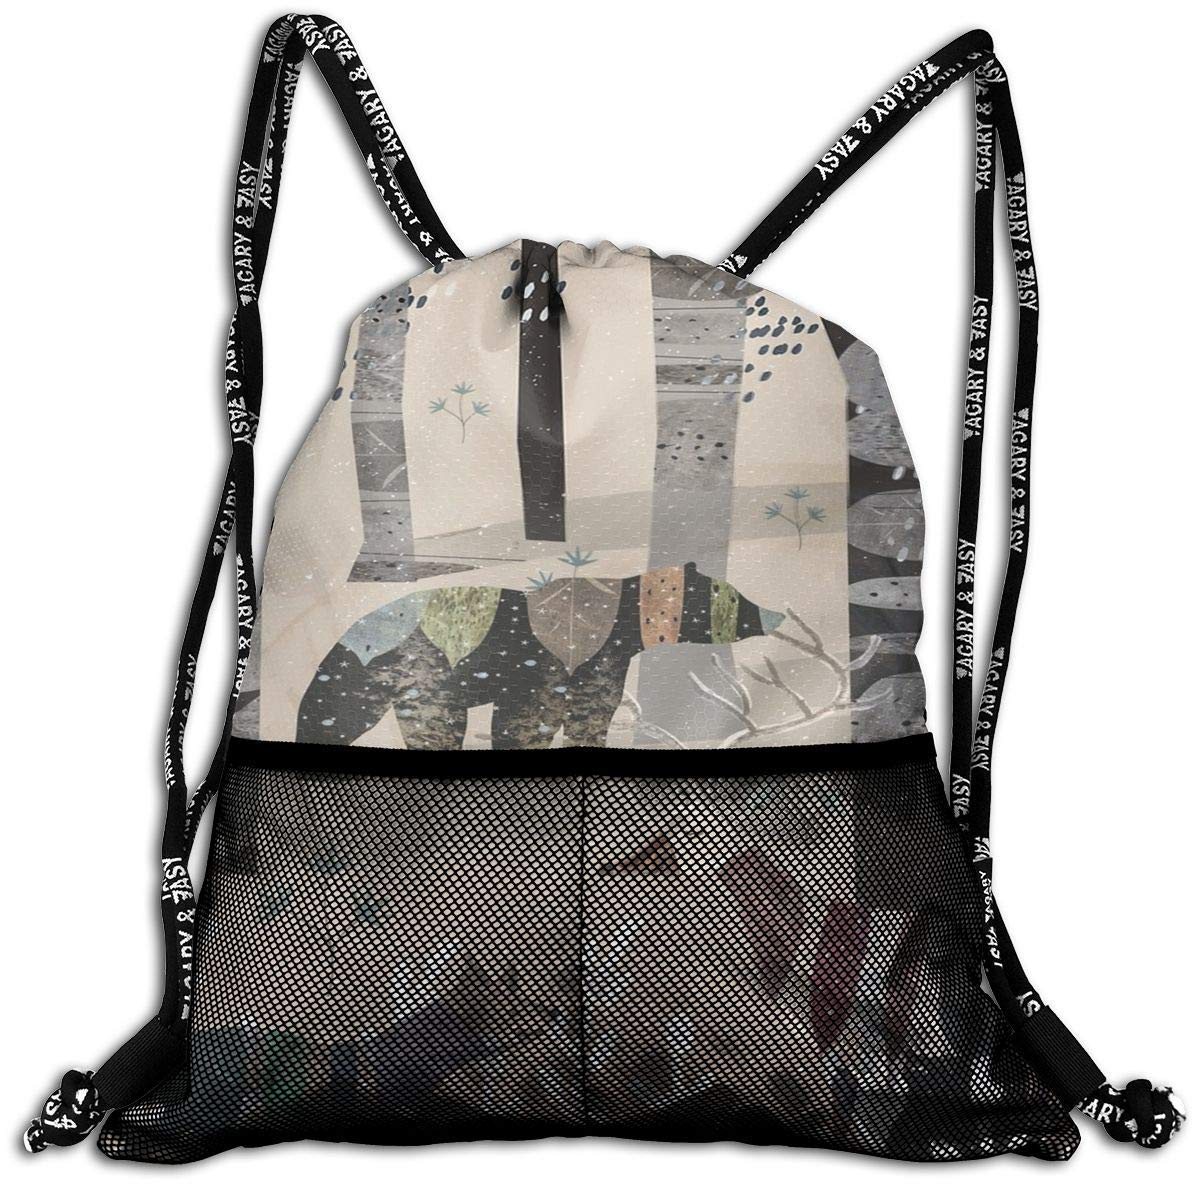 Forest In Sweater Unisex Drawstring Casual Rucksack with Mesh Beam Backpack Bag 8FGQVZX6NNIL8YW1IQP2